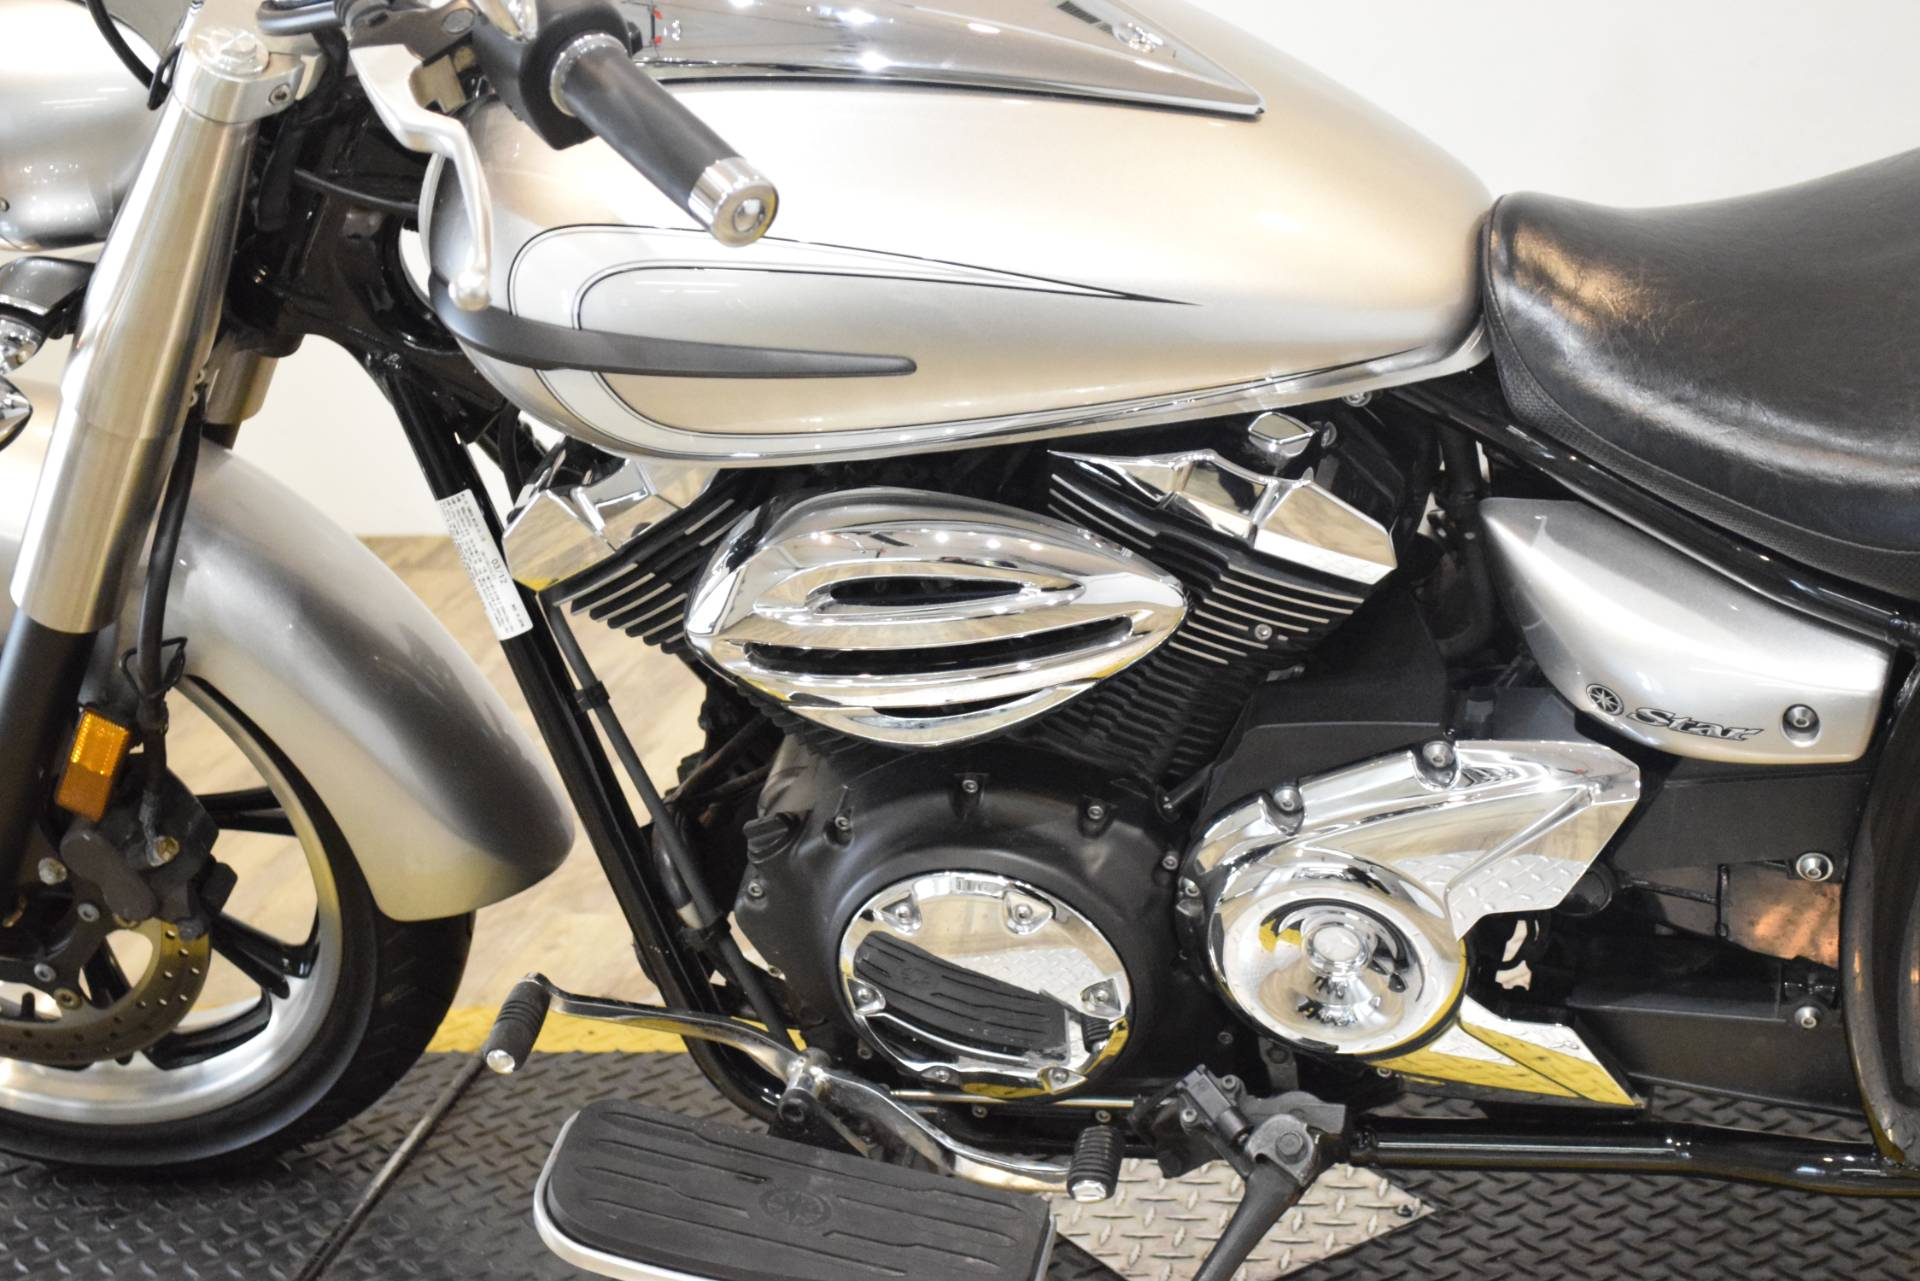 2012 Yamaha V Star 950  in Wauconda, Illinois - Photo 19